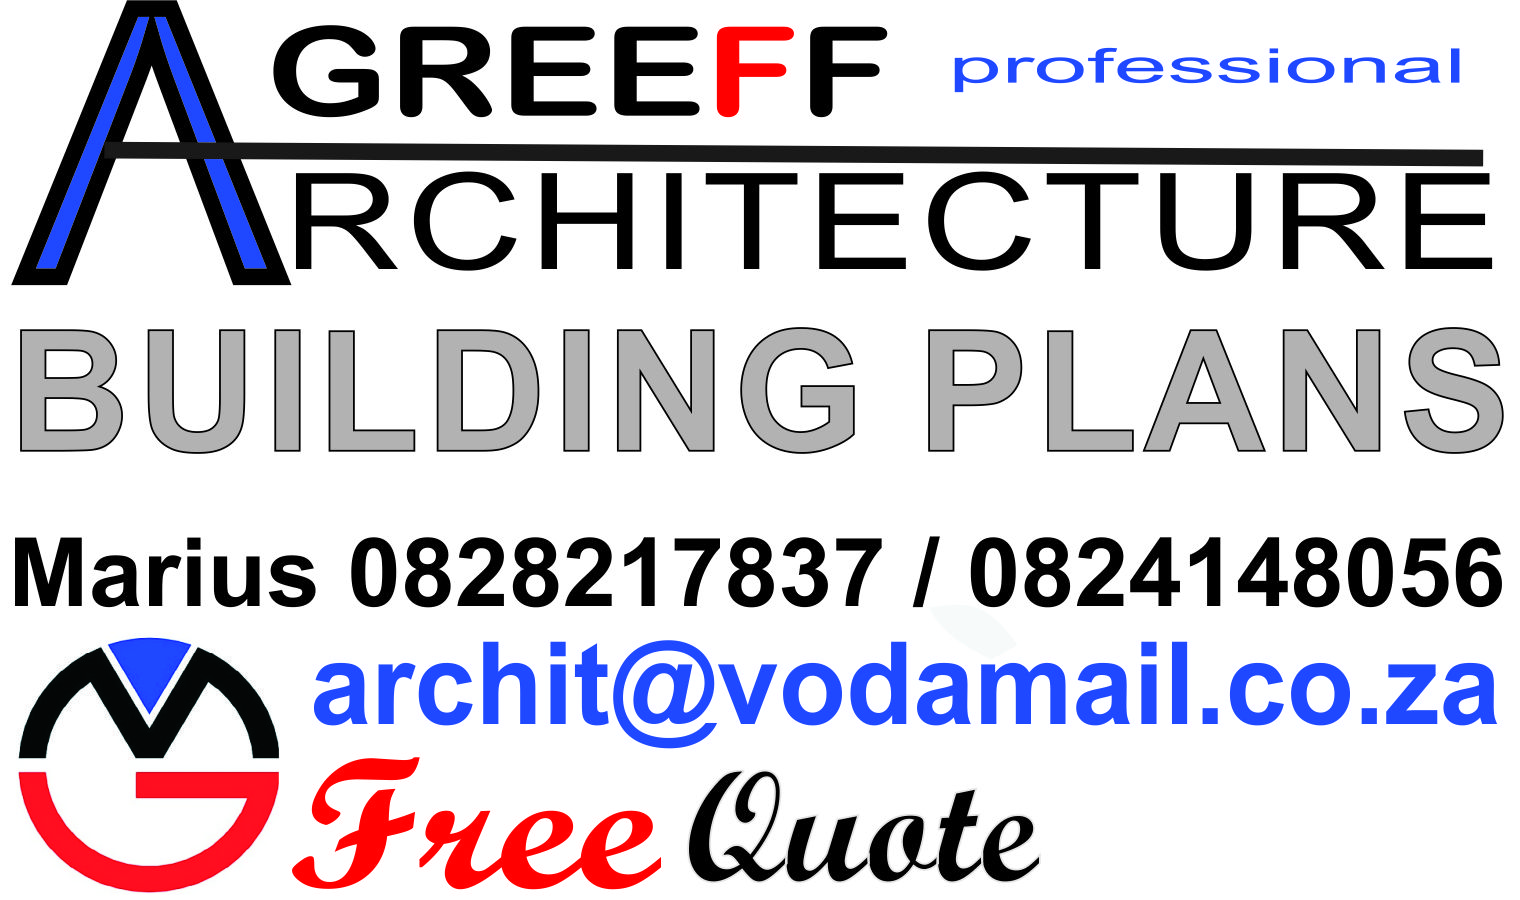 All types of Building Plans/Bouplanne in Southern Peninsula & Southern Suburbs - FREE VISIT/QUOTE